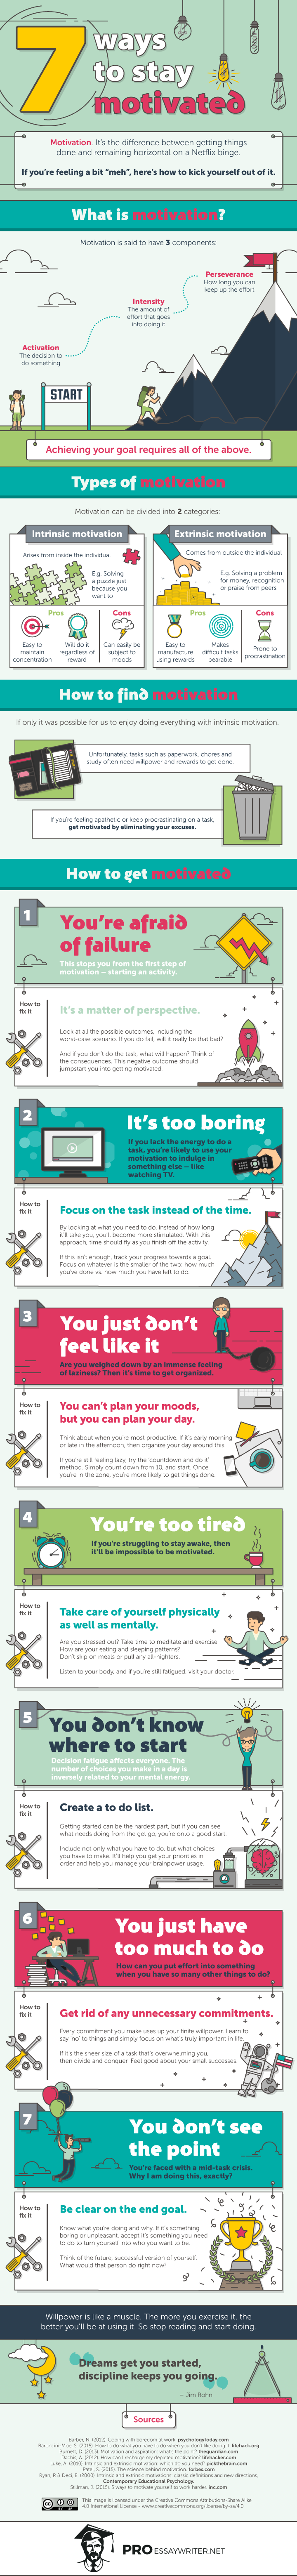 reasons you can t get motivated infographic the muse infographic courtesy of proessaywriter net photo of runner courtesy of shutterstock